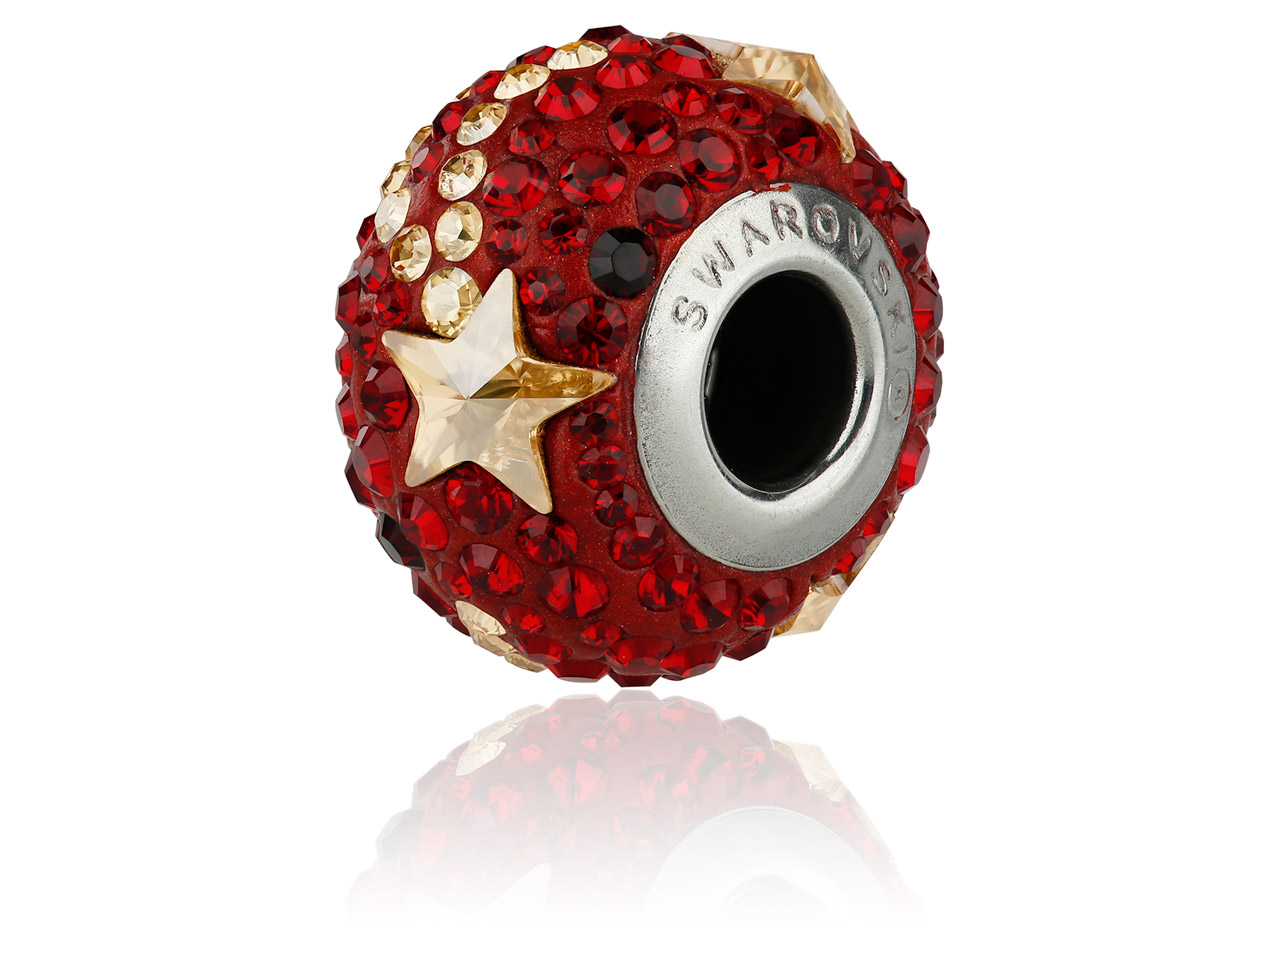 Swarovski Becharmed Pave Shooting  Star Charm Bead, Siam, 14mm,       Limited Edition